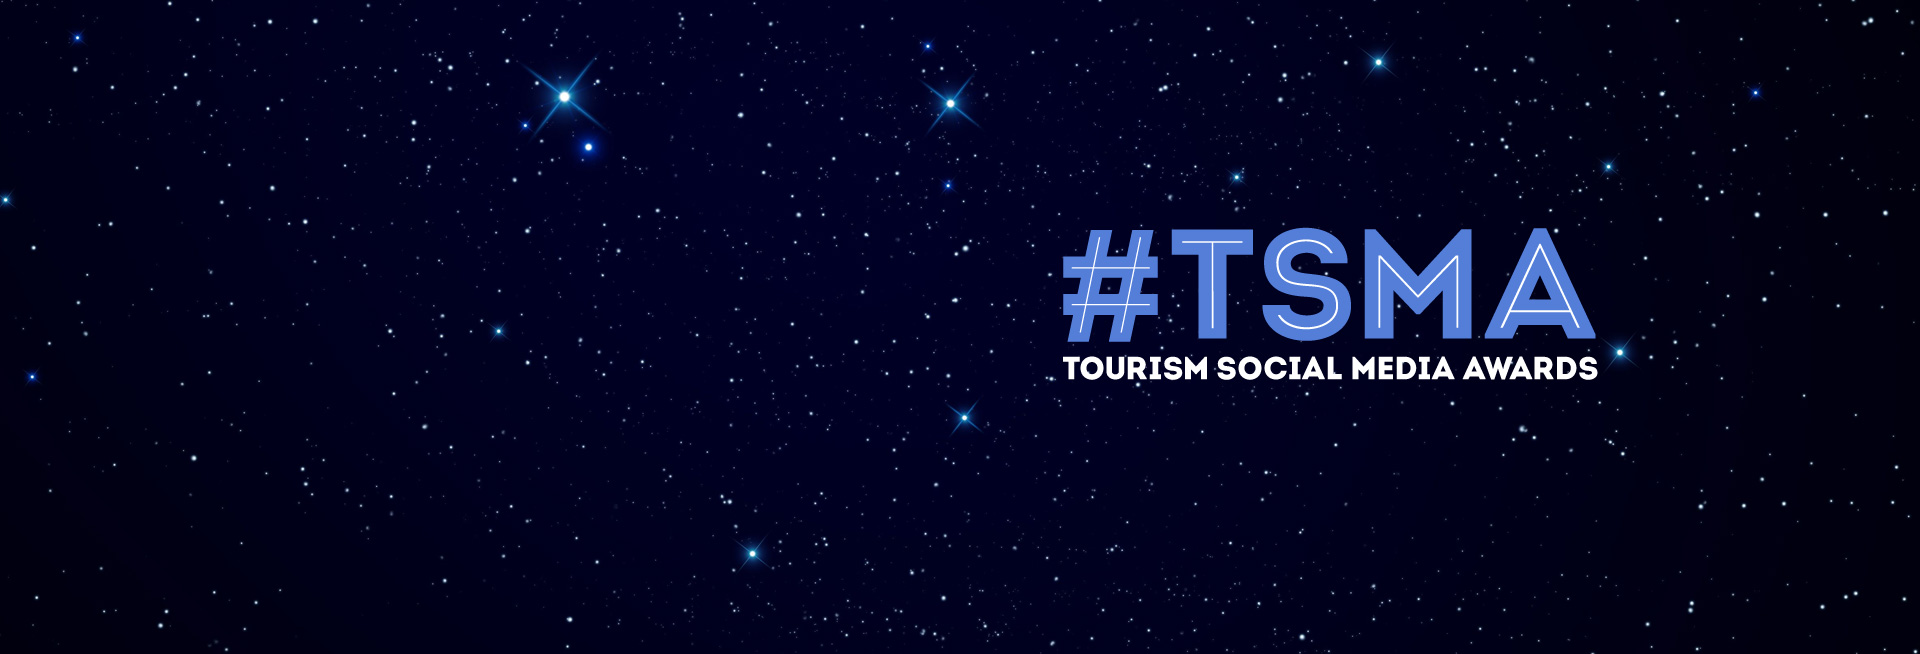 Tourism Social Media Awards